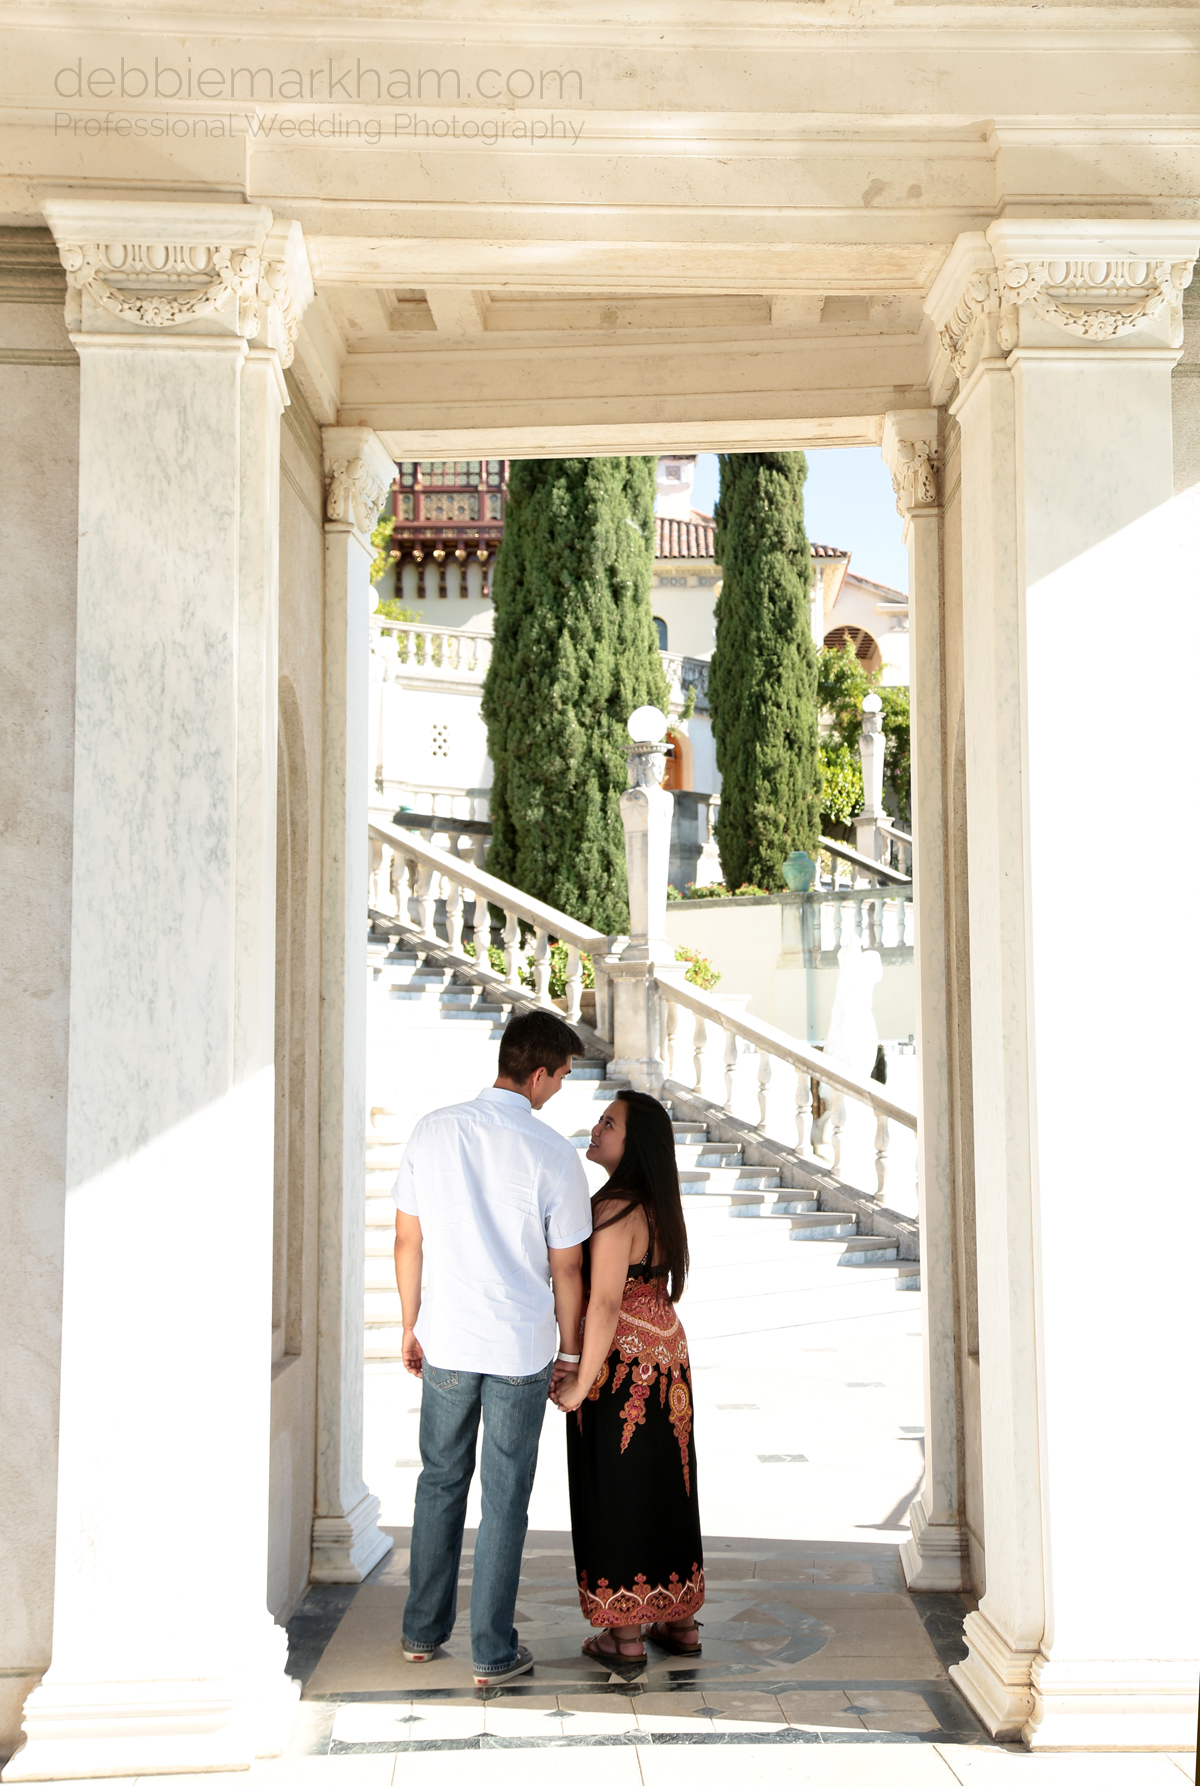 Debbie Markham Surprise Engagement Photography at Hearst Castle 319B1499